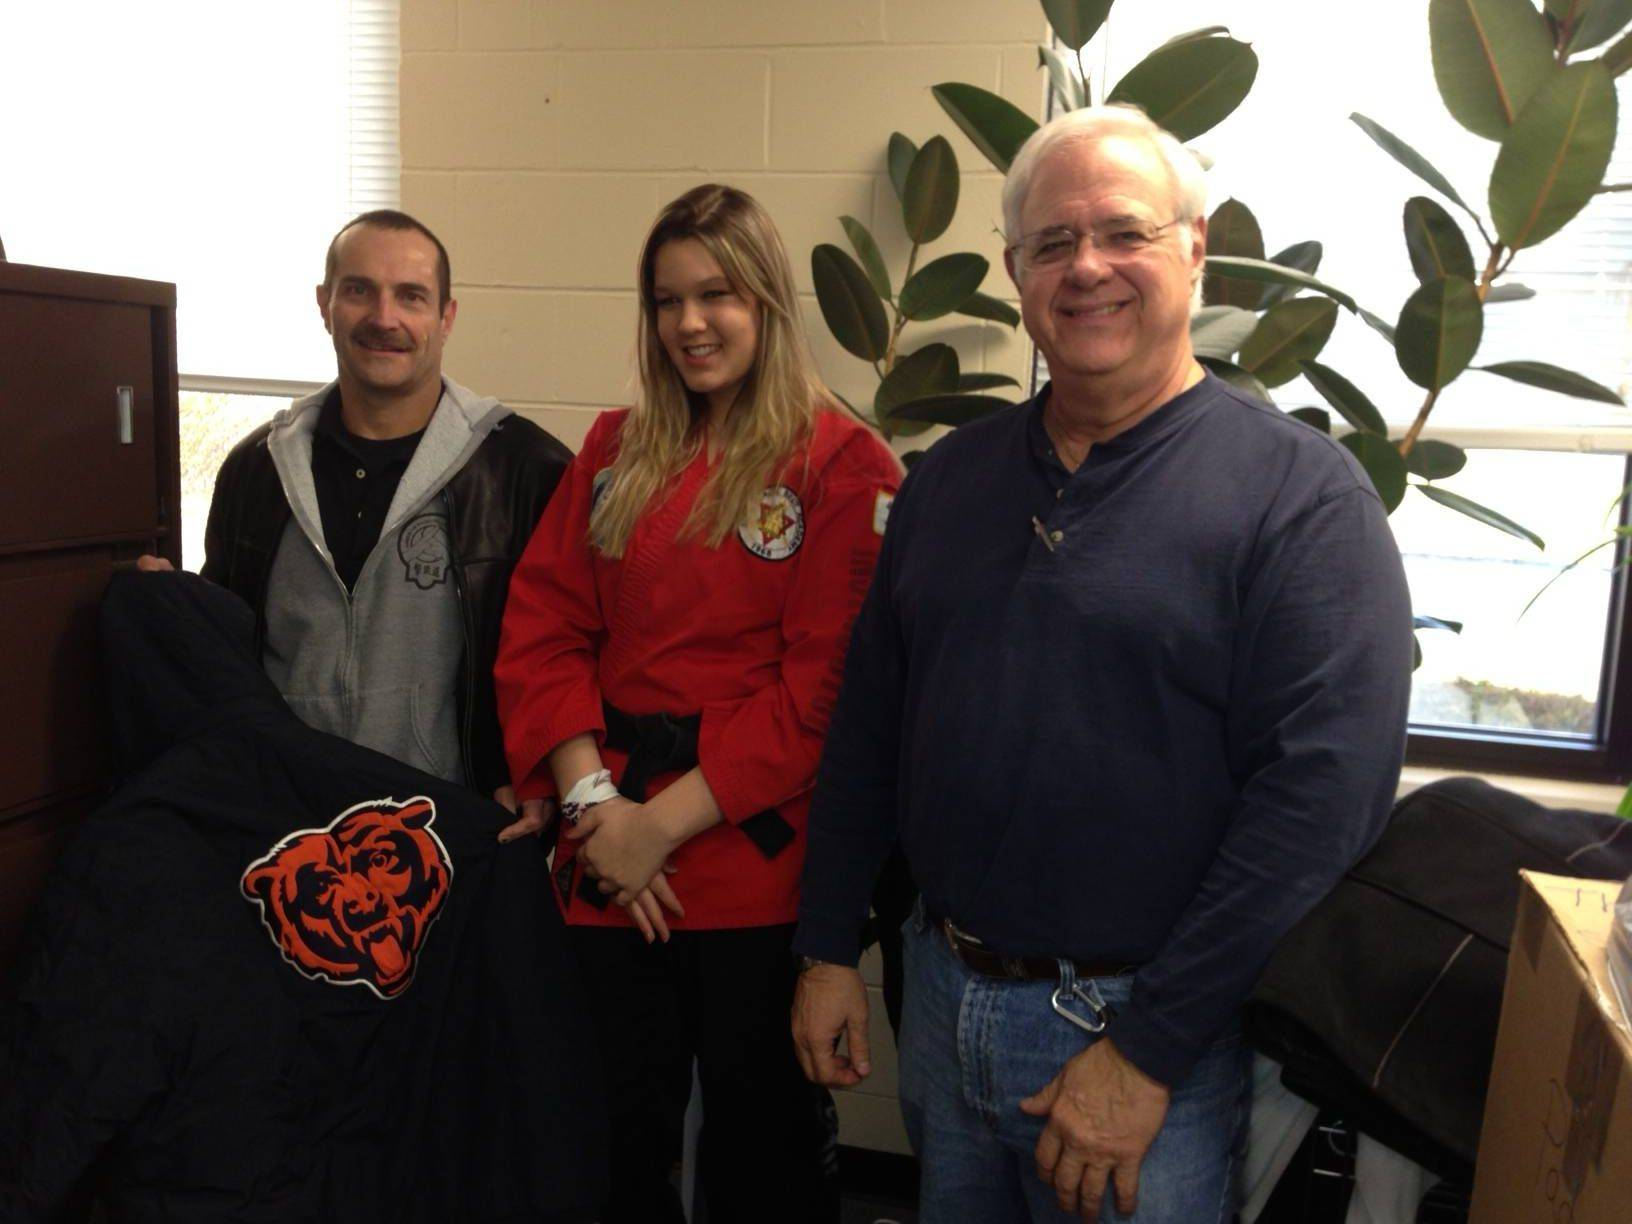 From left, Rick Steinmaier, chief instructor, Grace McMahon, program director, and Dennis Hewitt, executive director of PADS